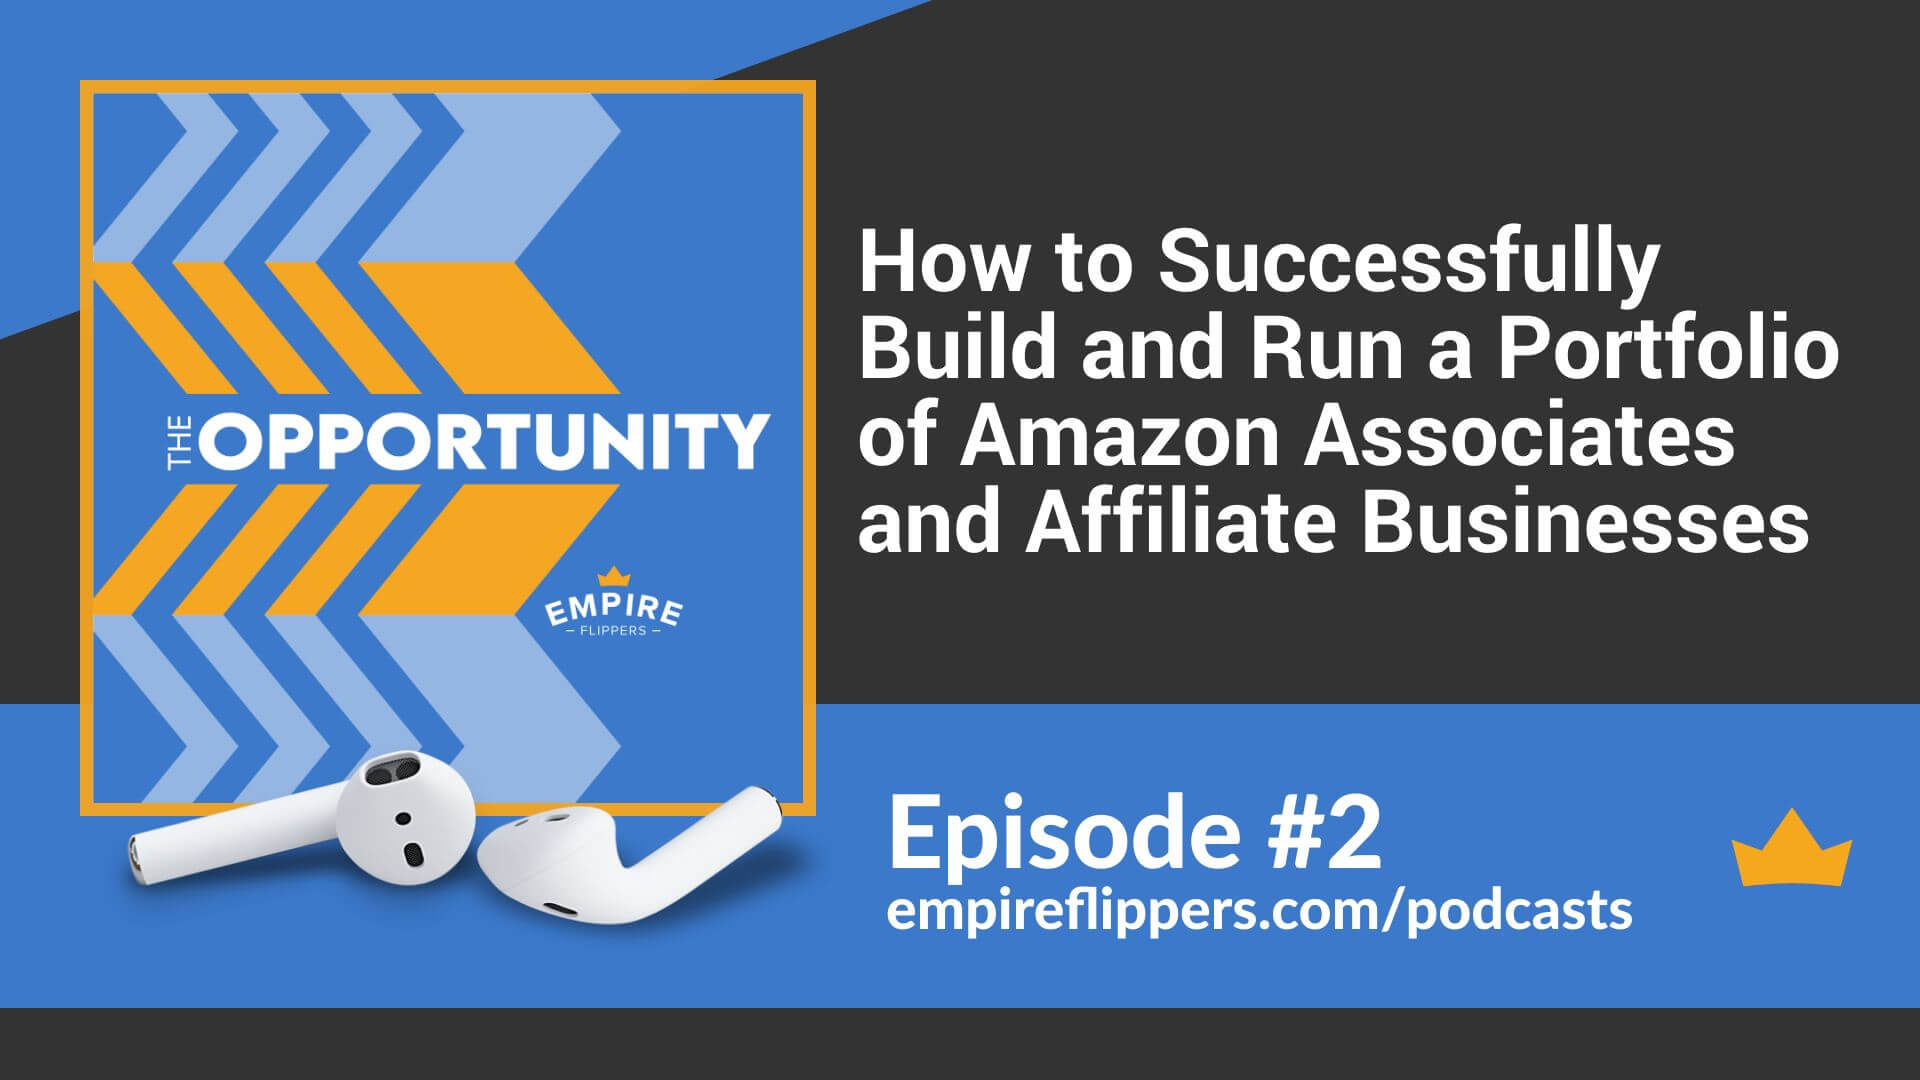 The Opportunity Ep.2: How to Successfully Build and Run a Portfolio of Amazon Associates and Affiliate Businesses